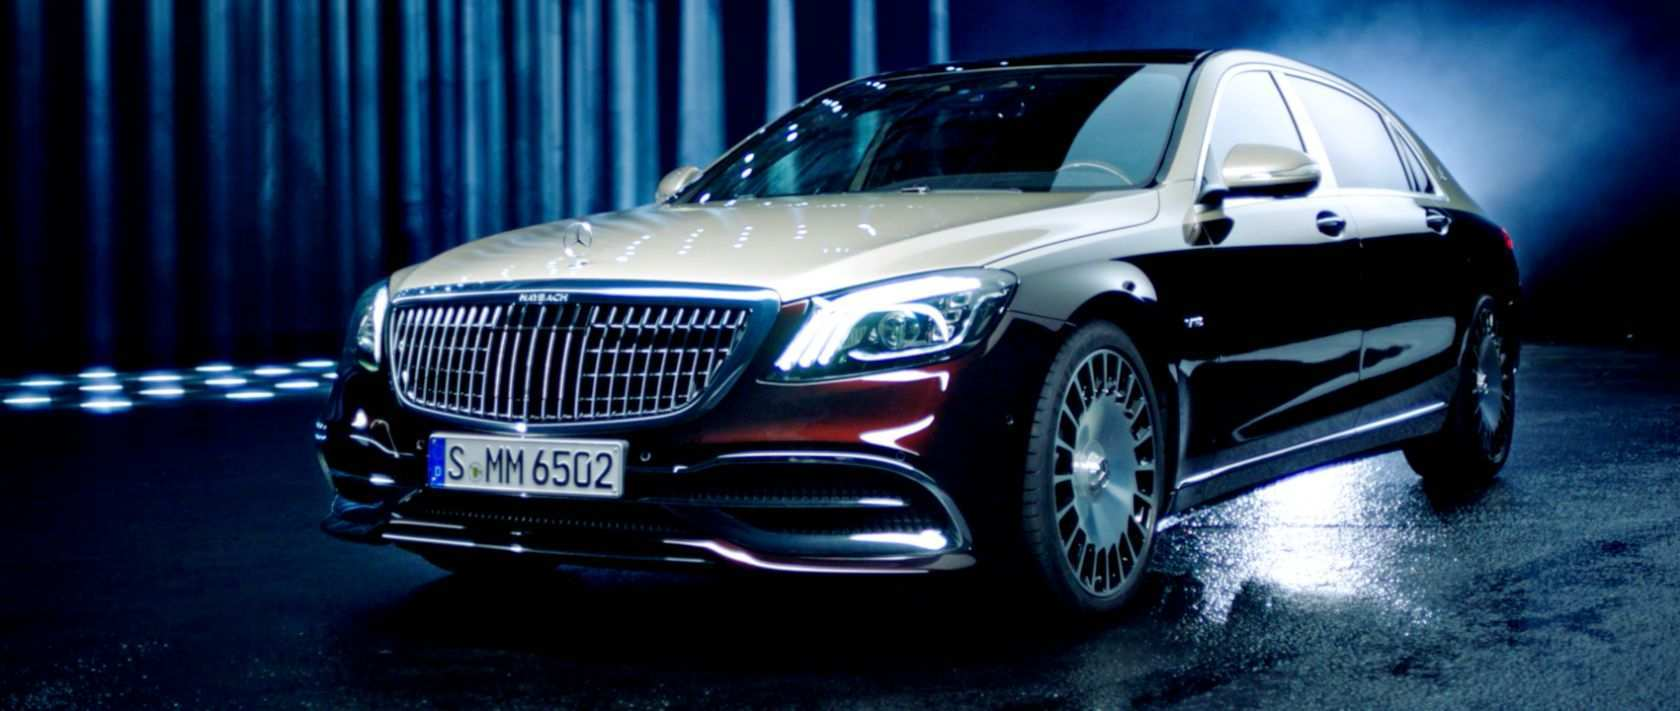 51 Best 2019 Mercedes Maybach S650 New Concept